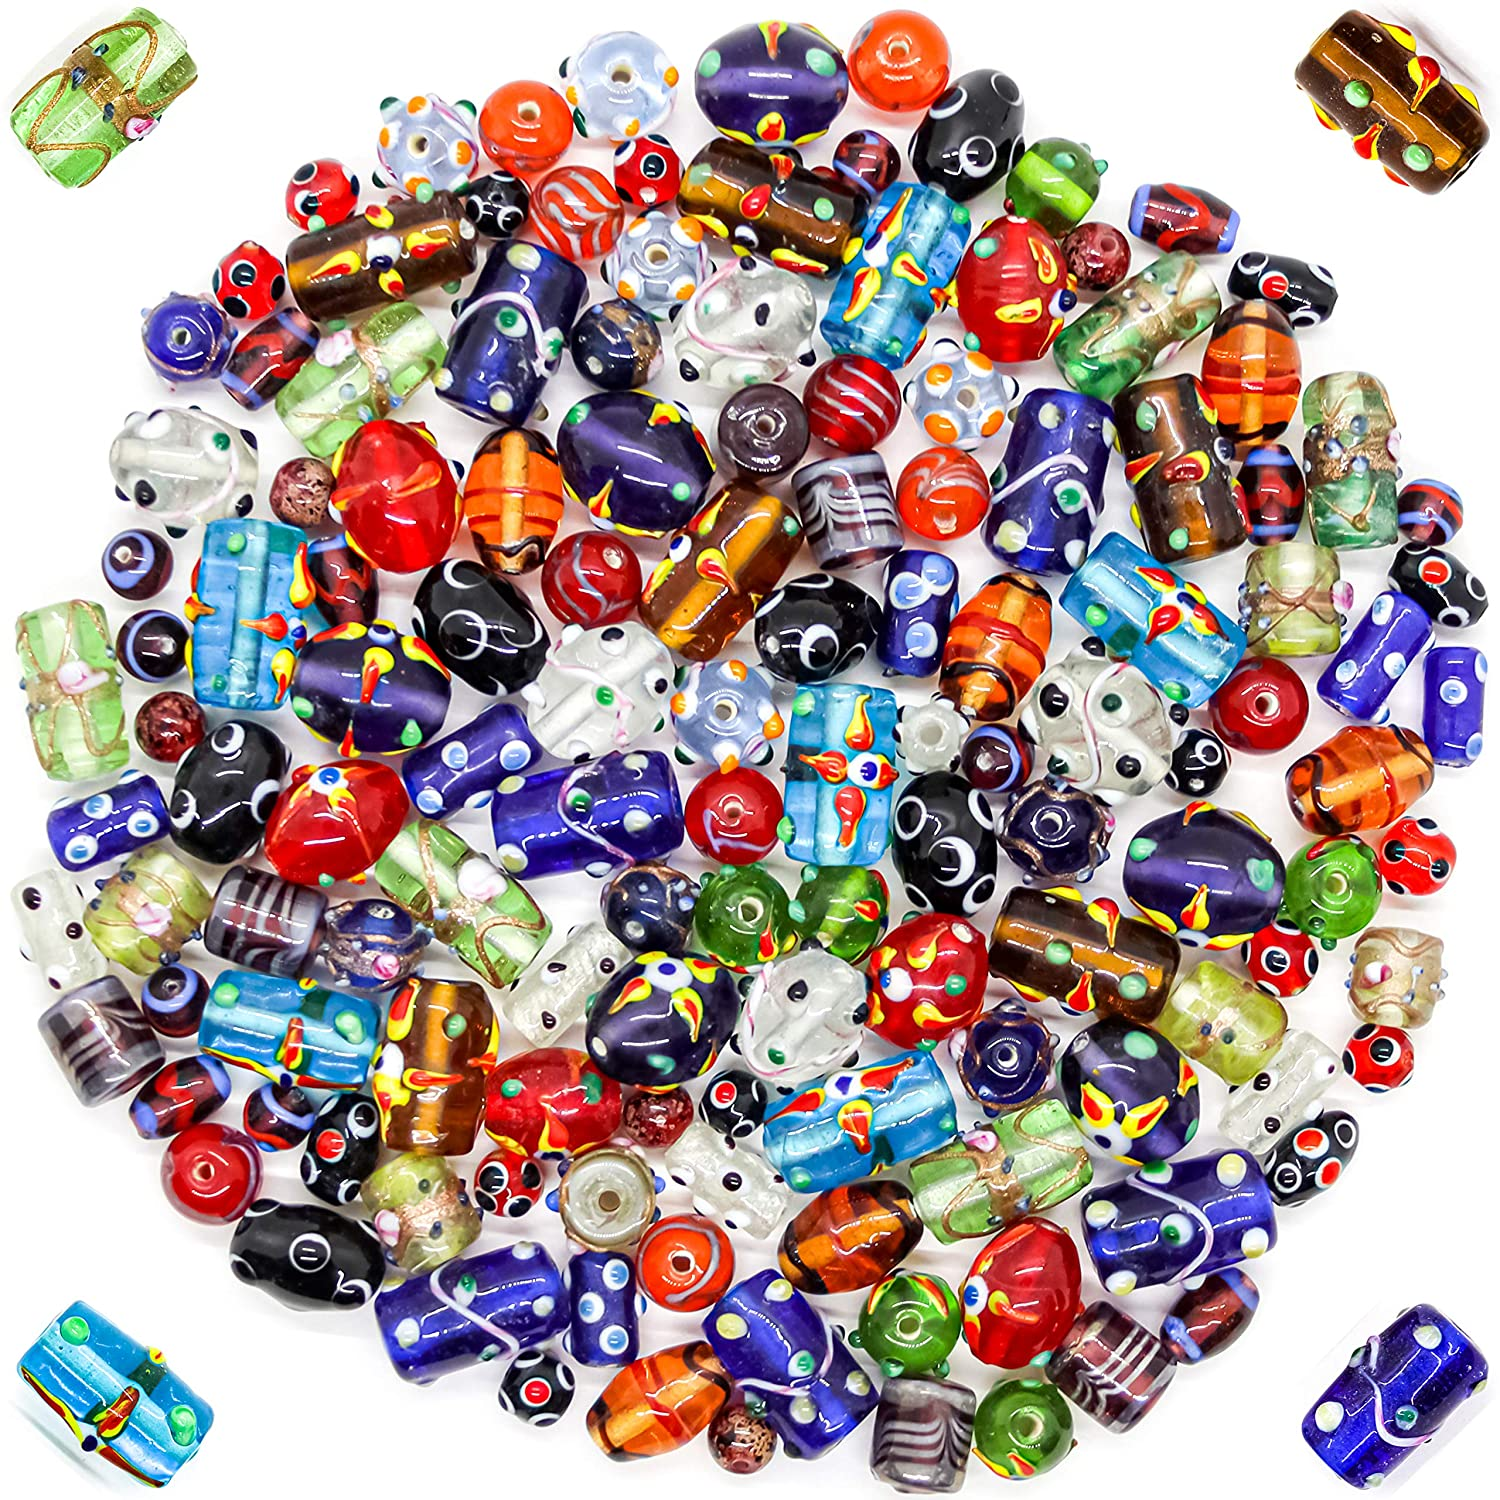 8ef15e2c62291 Glass Beads for Jewelry Making Supplies for Adults, 120-140 Pcs Bulk Kits -  Premium Assorted Mix of Large Craft Lampwork Murano Beads for Bracelet and  ...